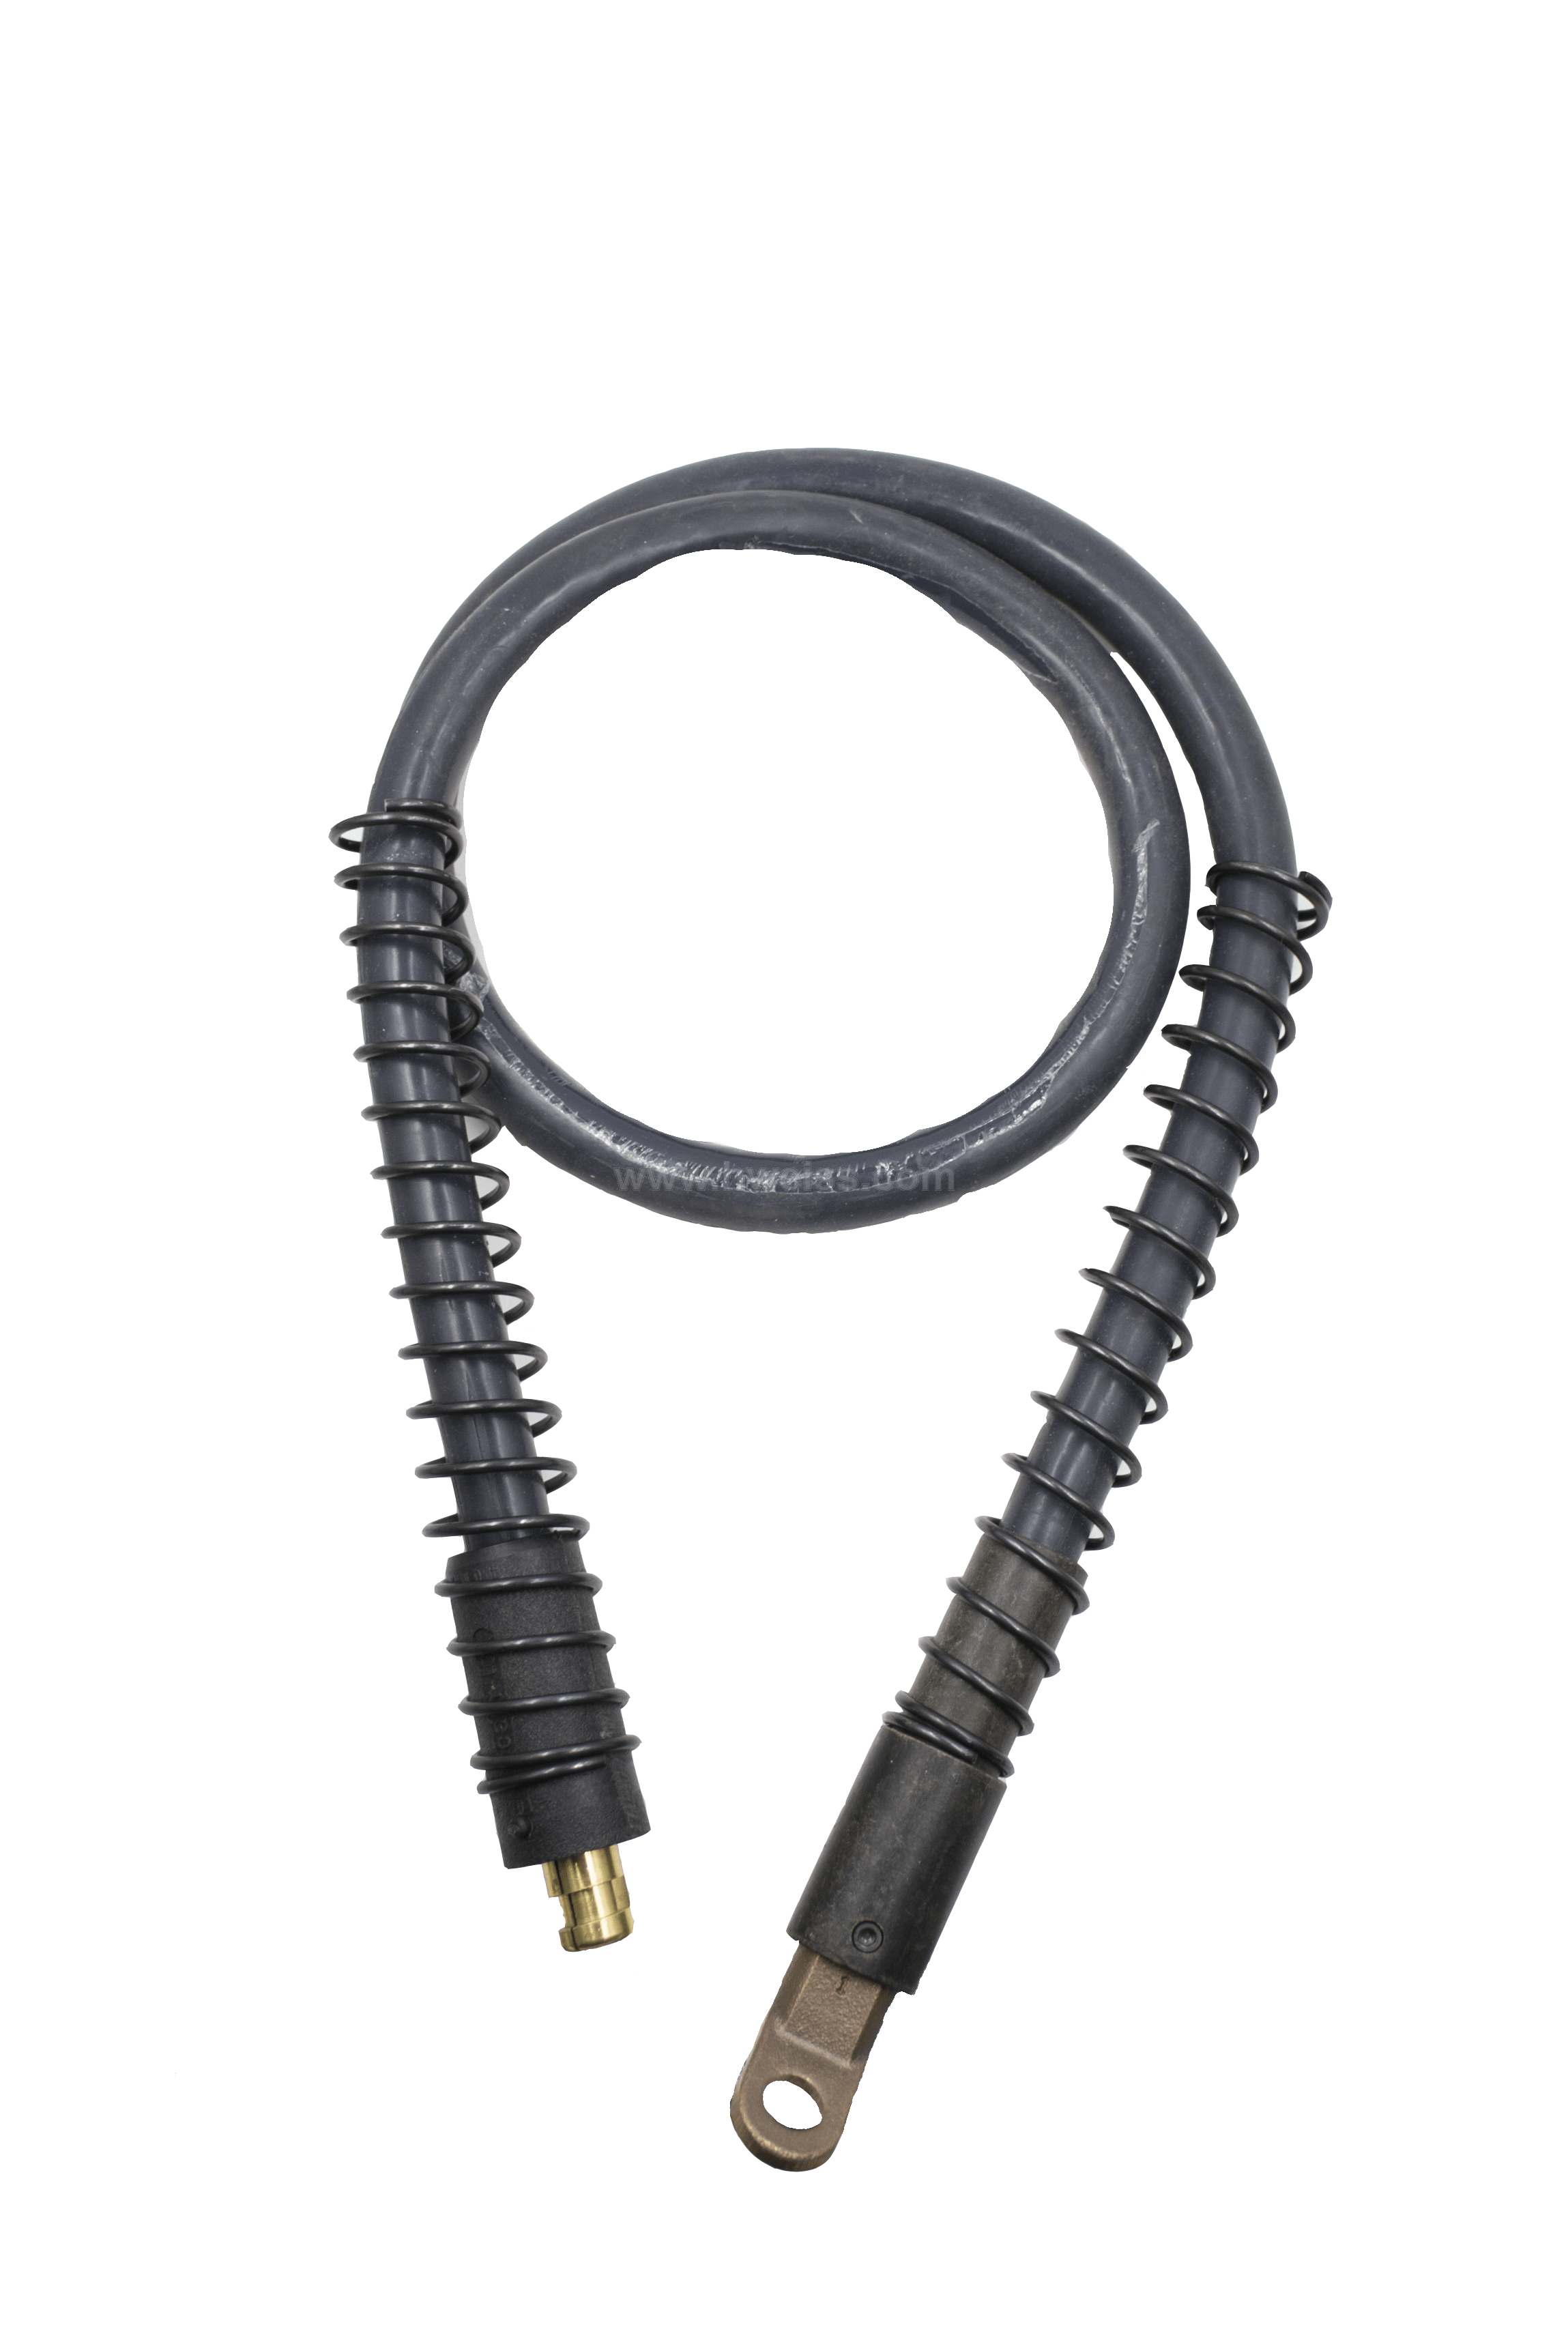 DD-17294 Weld Cable